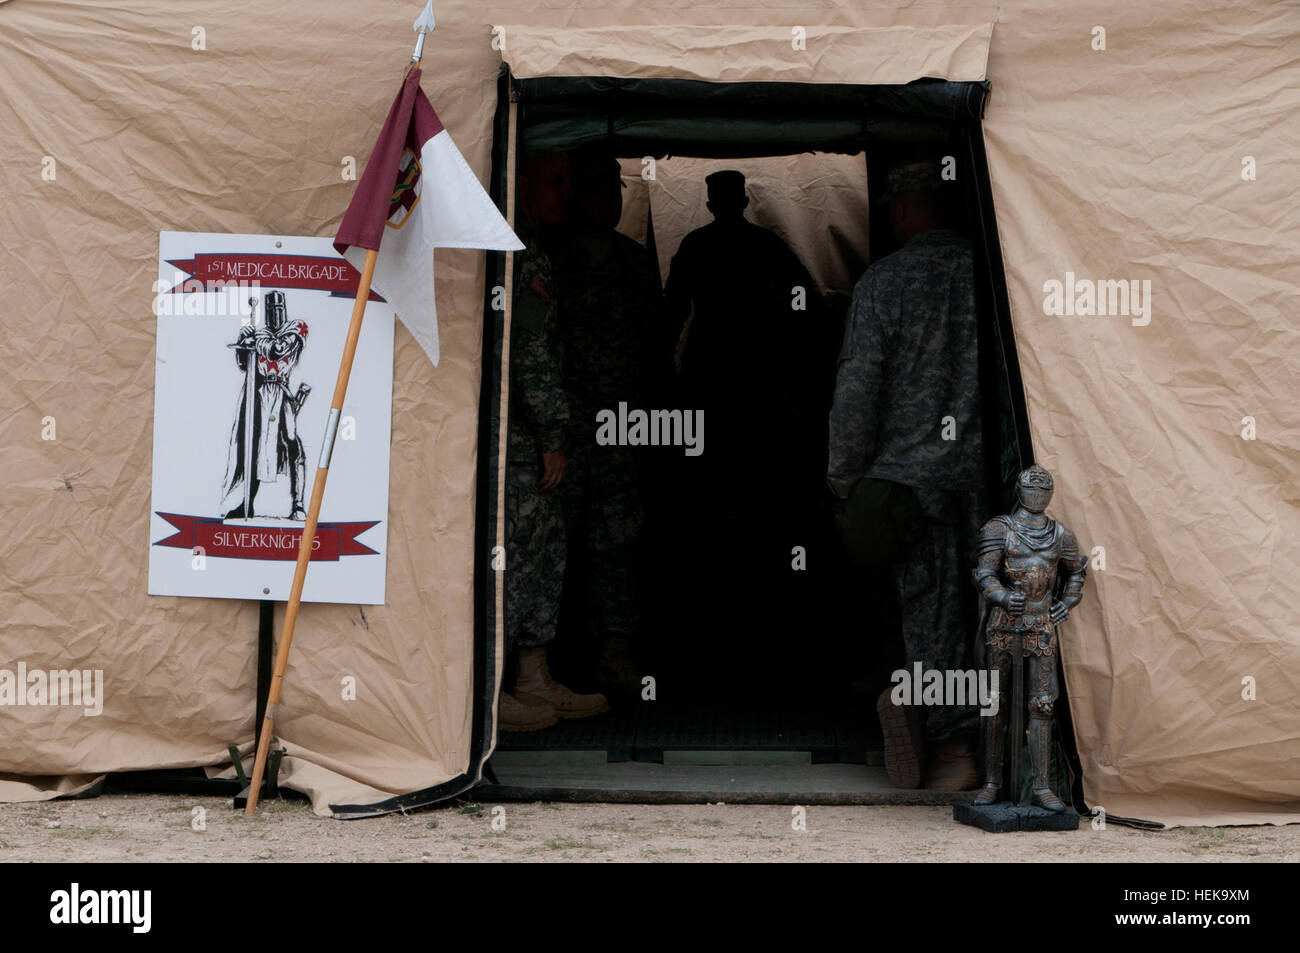 The 1st Medical Brigade's mascot, the Silver Knight, stands sentinel outside the tactical operations center - Stock Image